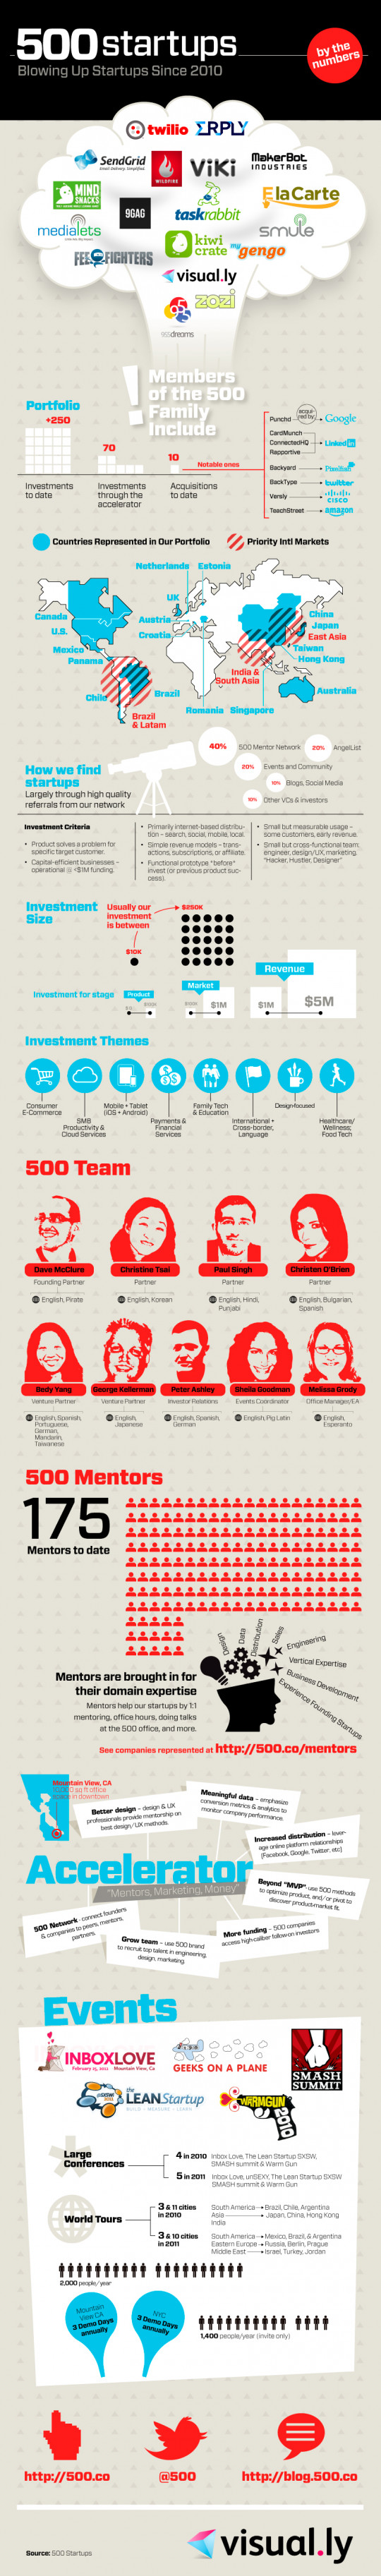 500 Startups: Blowing Up Startups Since 2010